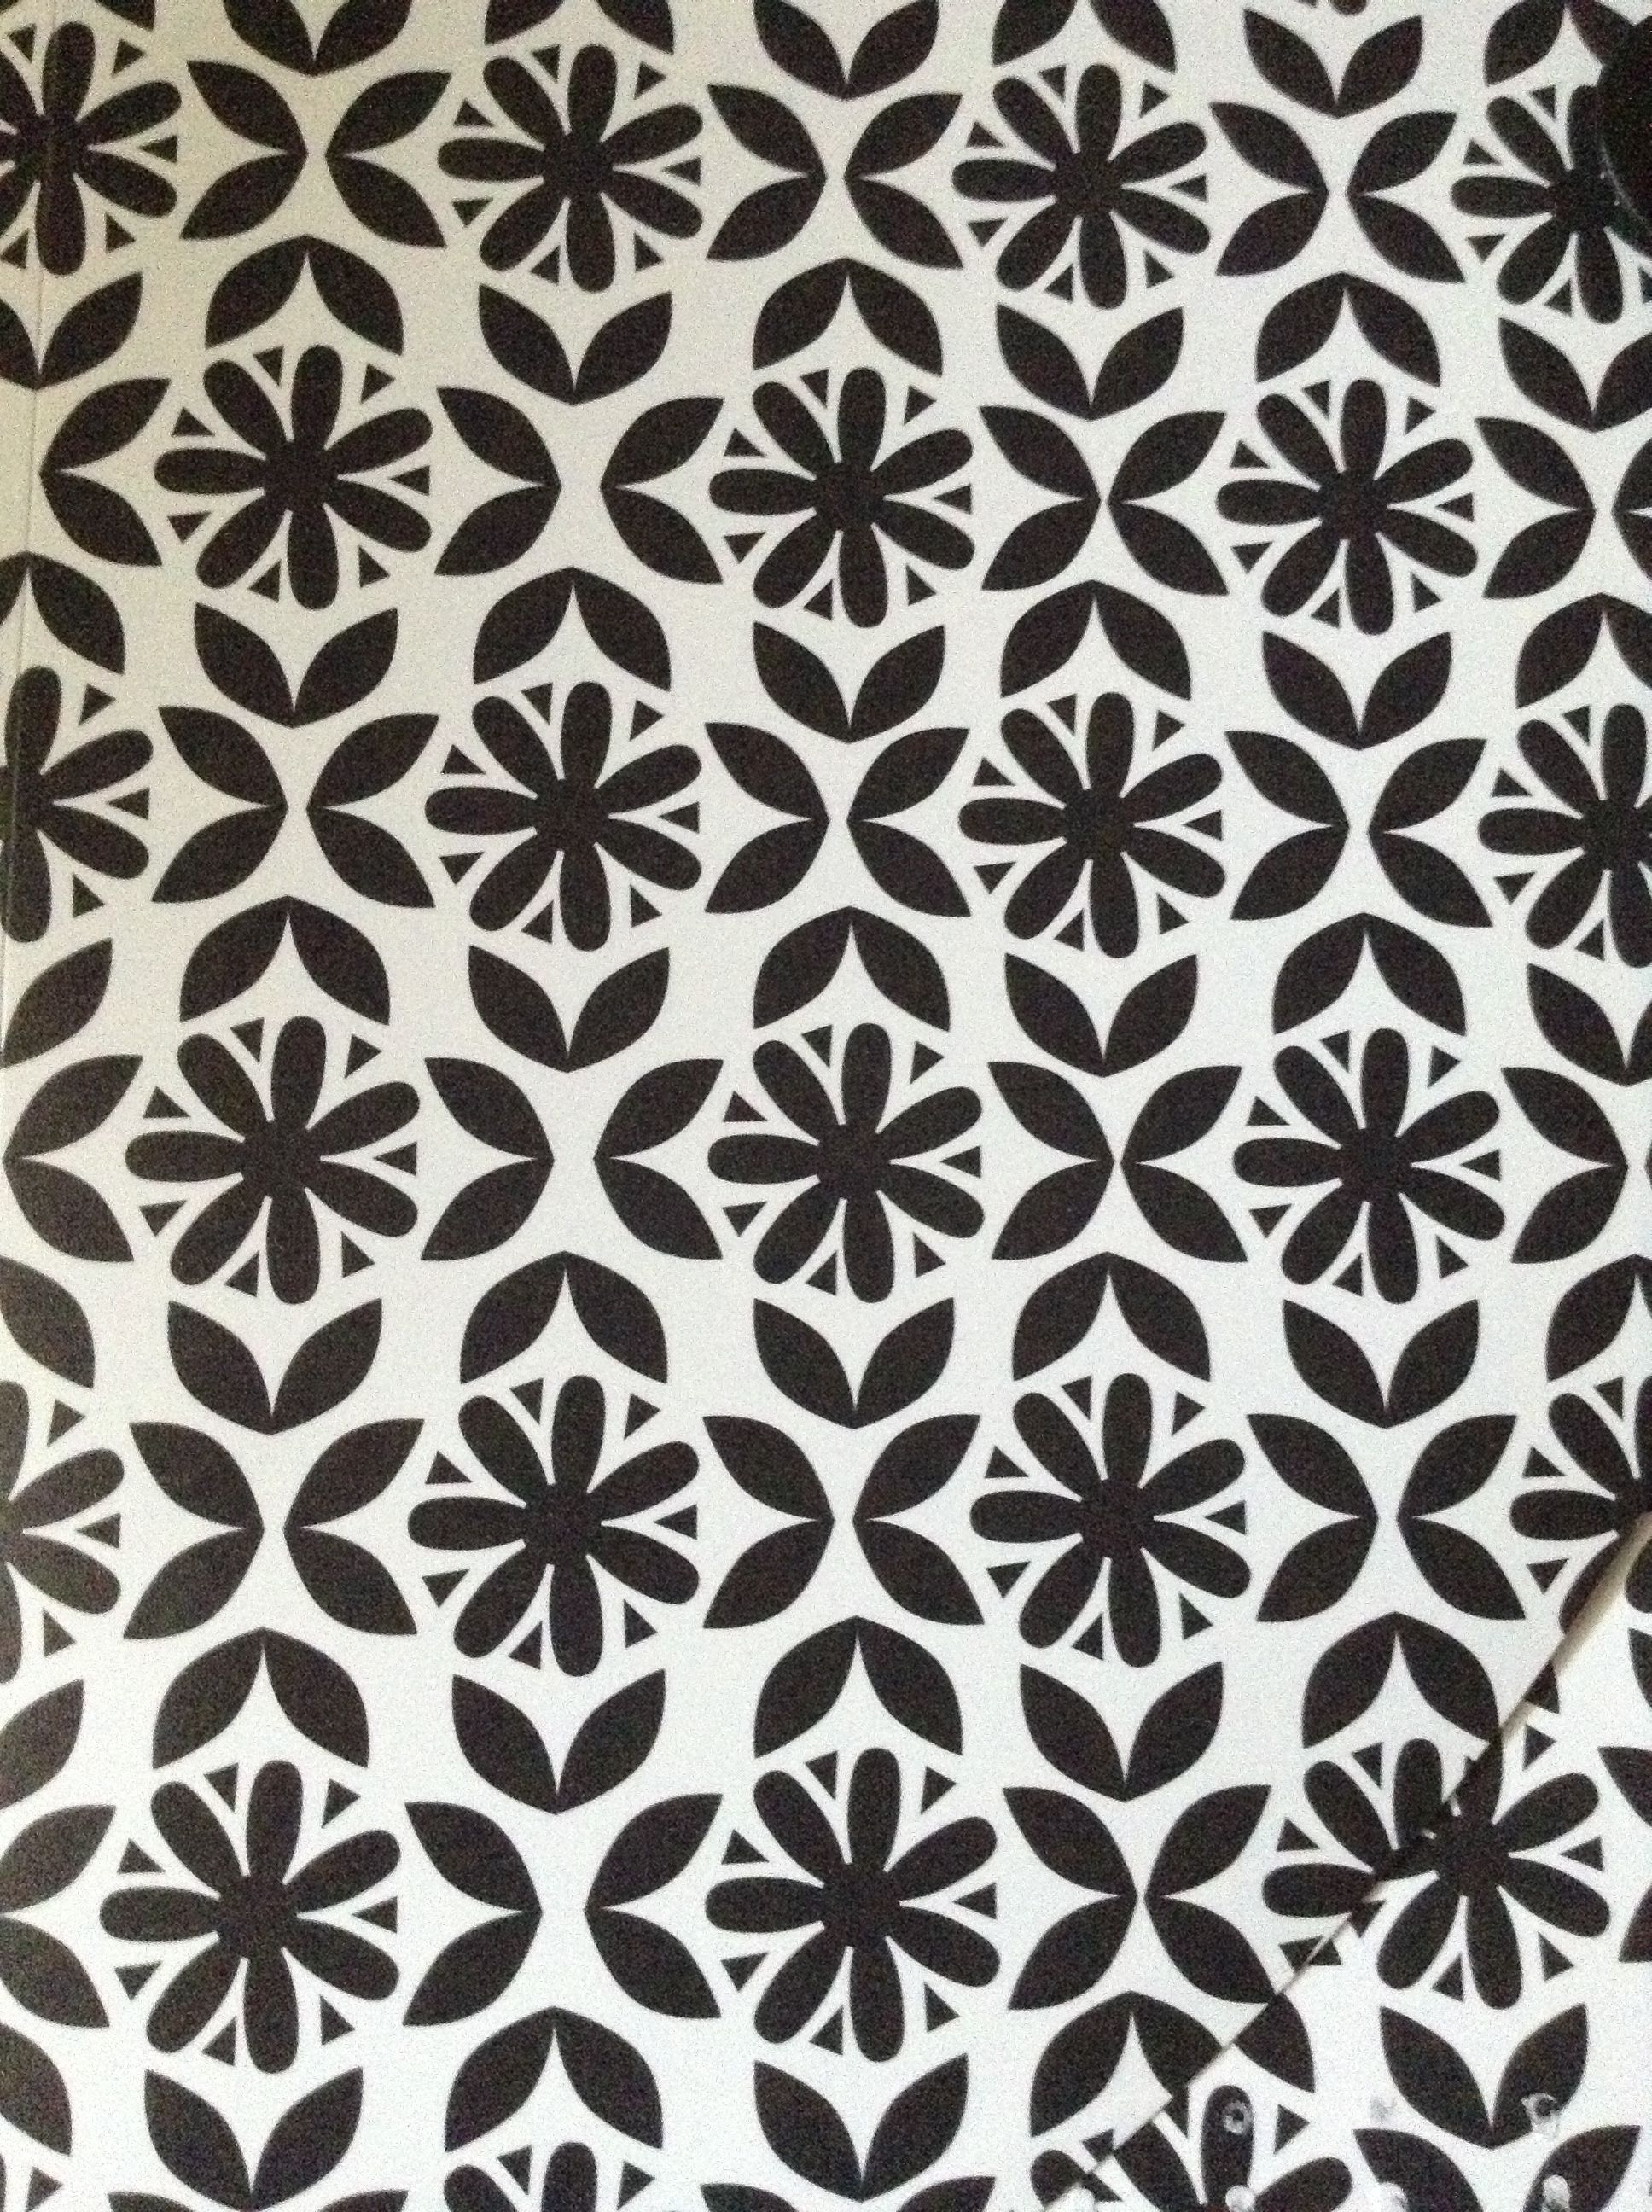 A Pretty Black And White Flower Pattern Arts And Crafts